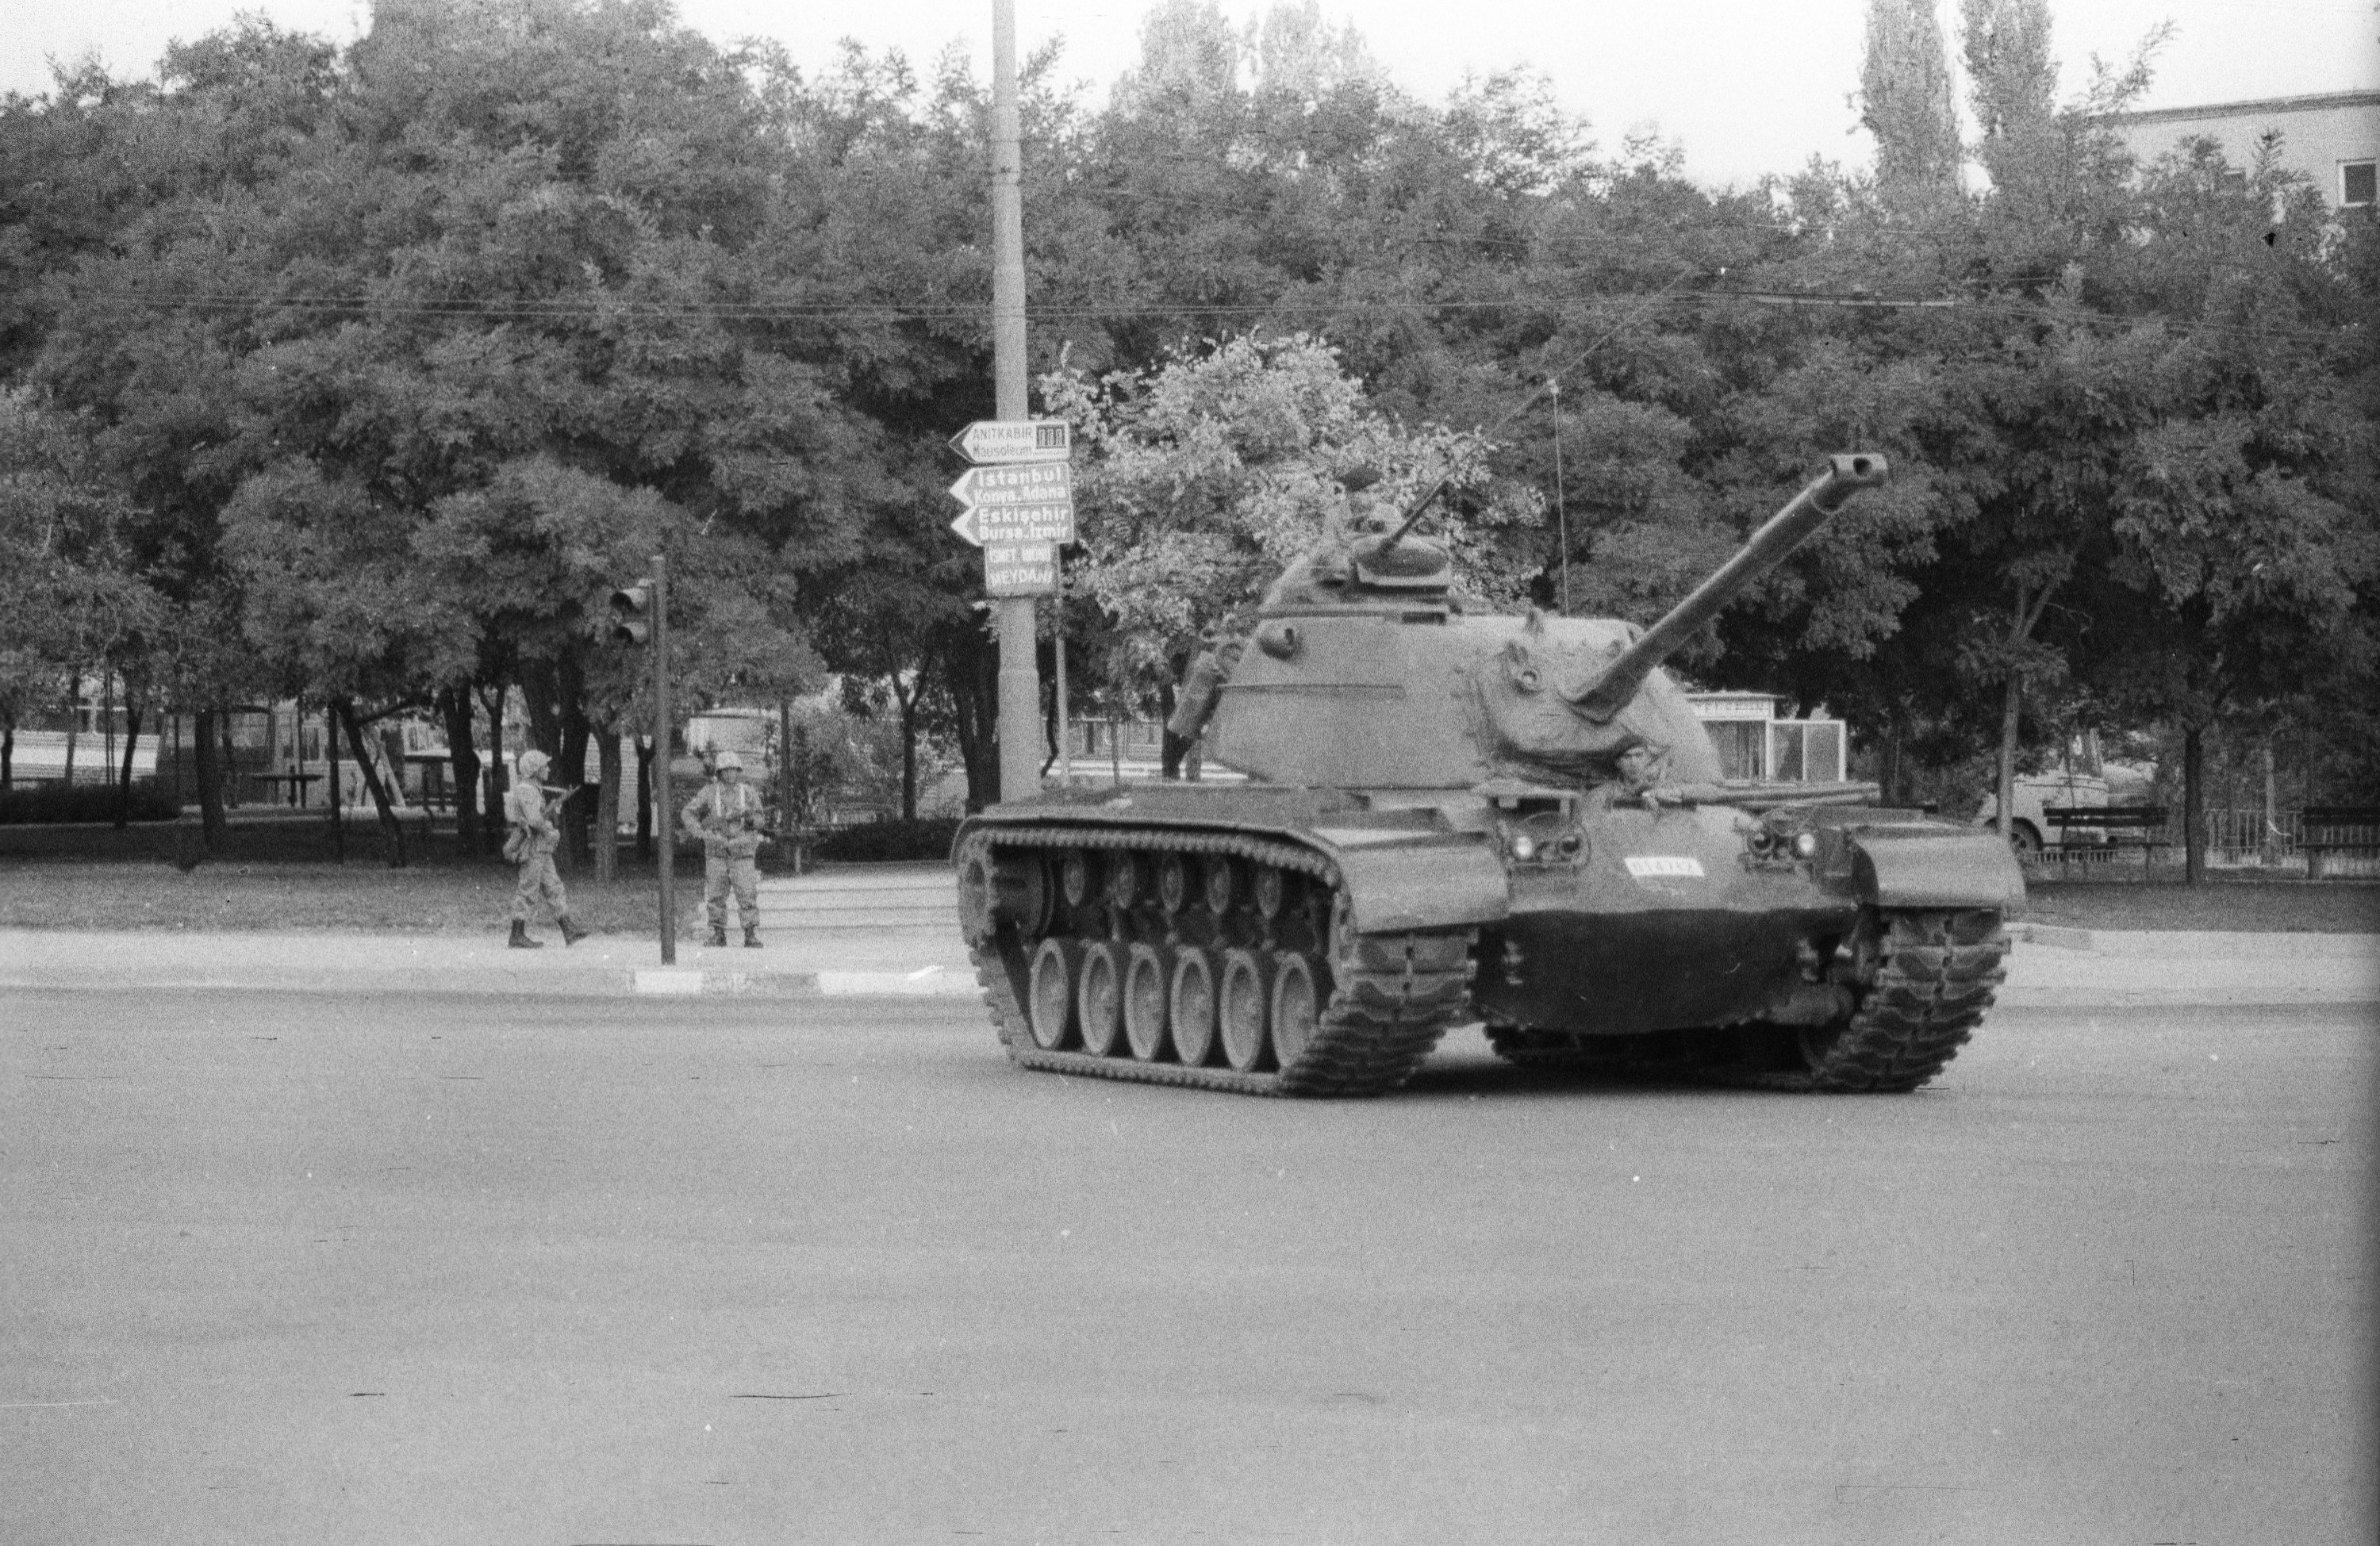 Sept. 12 marks the anniversary of one of the bloodiest coups in Turkey's history. The Turkish military seized power through 'Operation Flag,' which effectively shut down the government and Parliament. (AA File Photo)